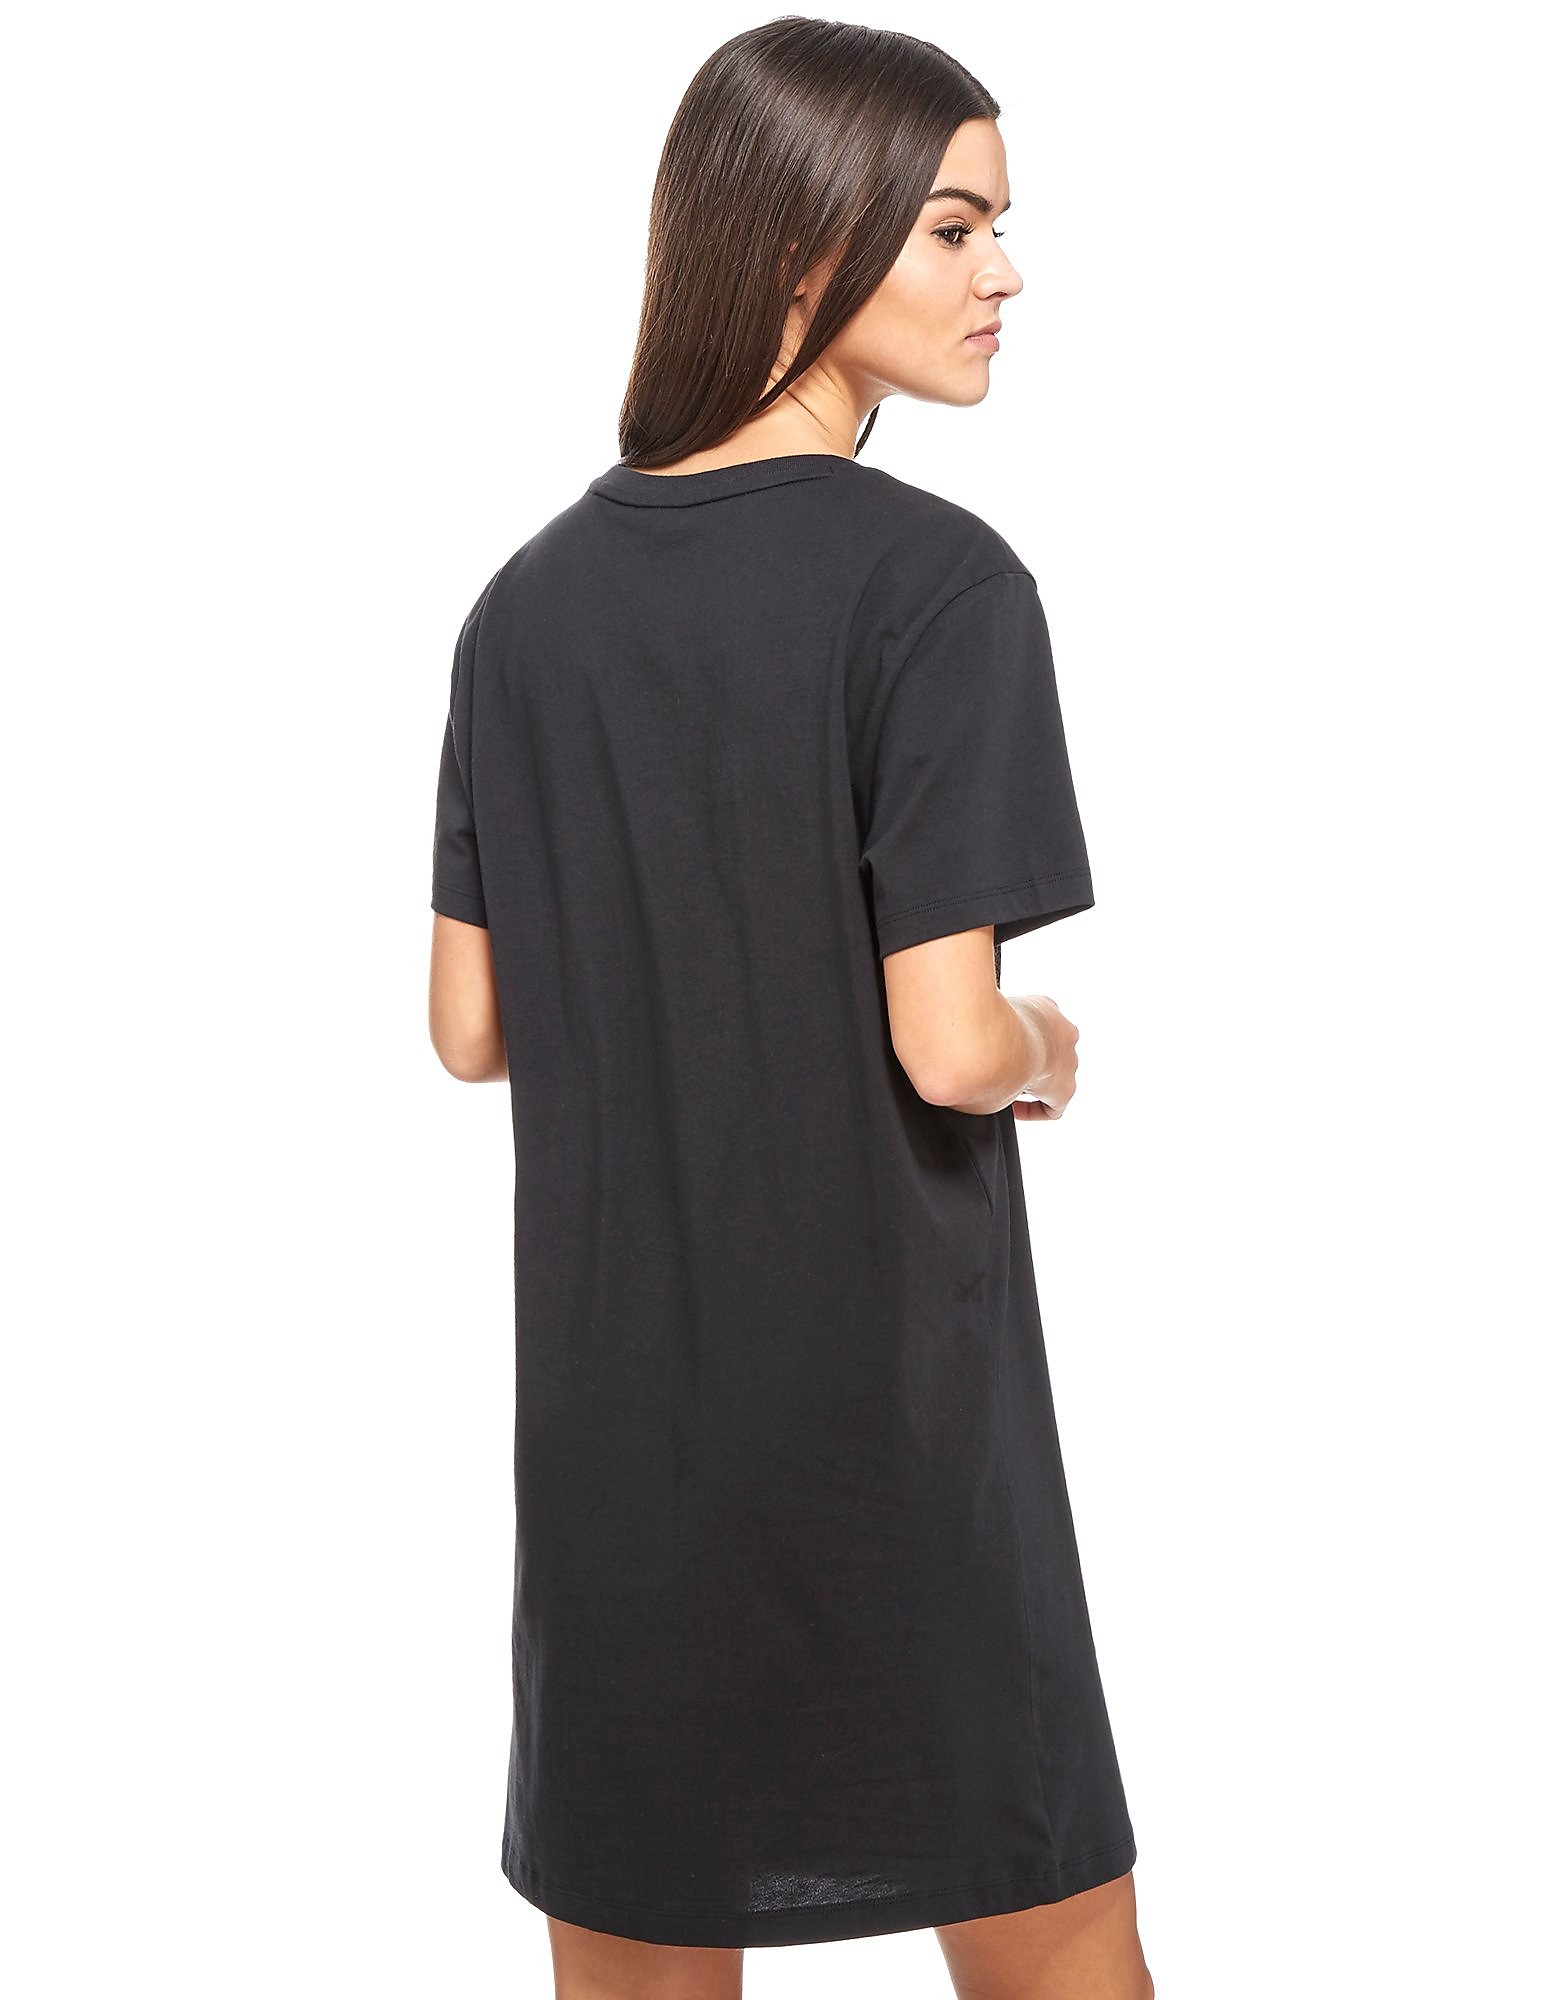 adidas Originals Trefoil T-Shirt Dress